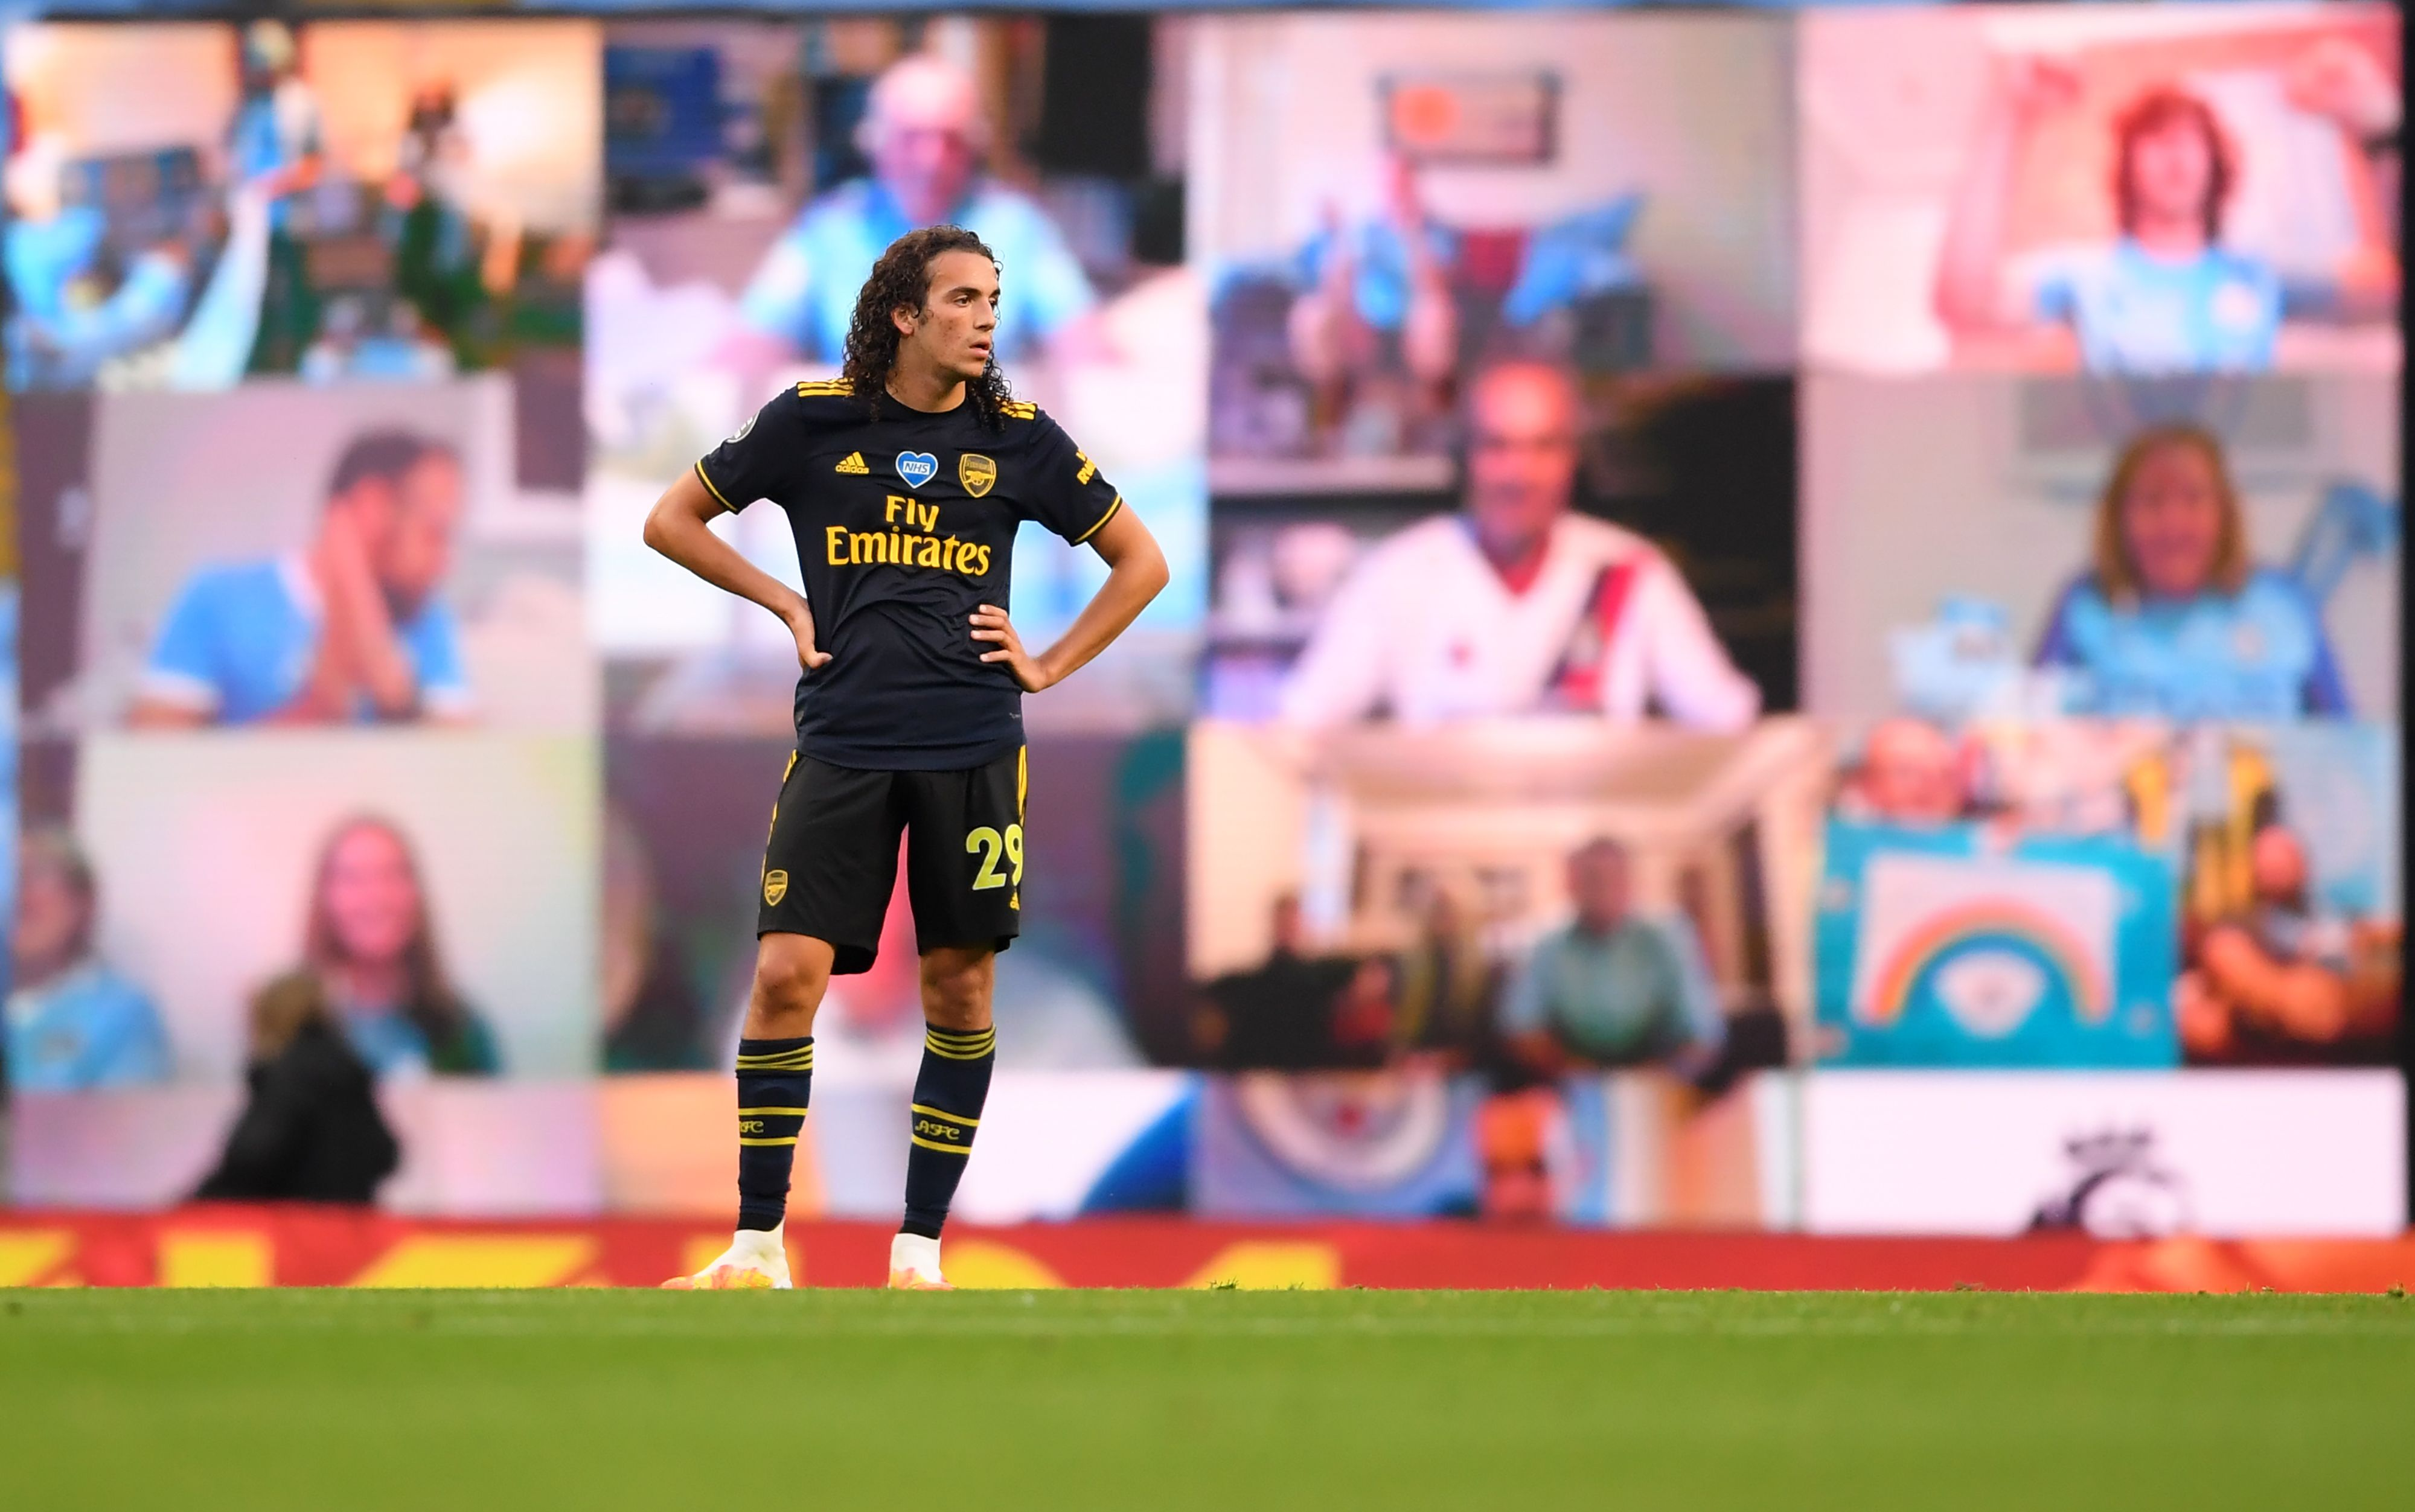 Barcelona set to battle with Paris Saint-Germain for Guendouzi who is seen in the photo